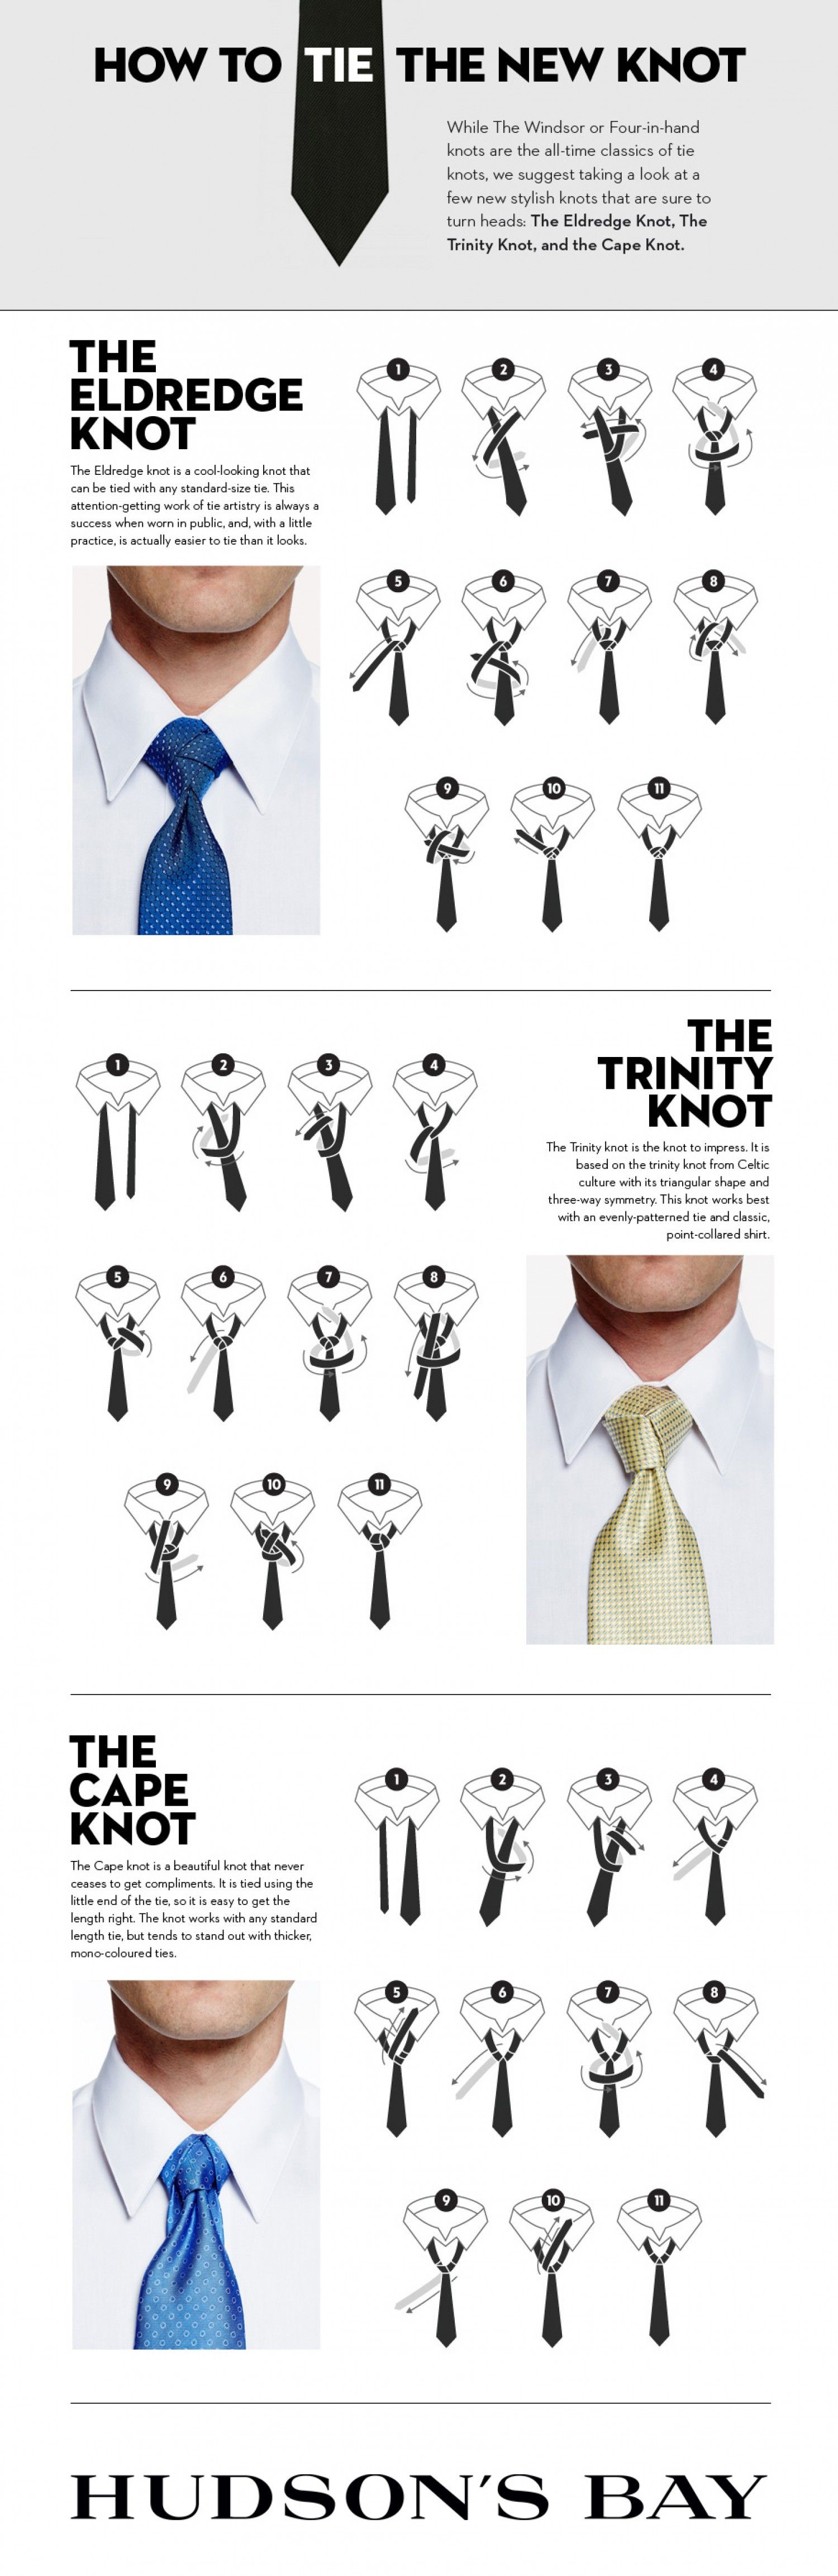 How to tie the new knot infographic knowledge pinterest how to tie the new knot infographic ccuart Image collections